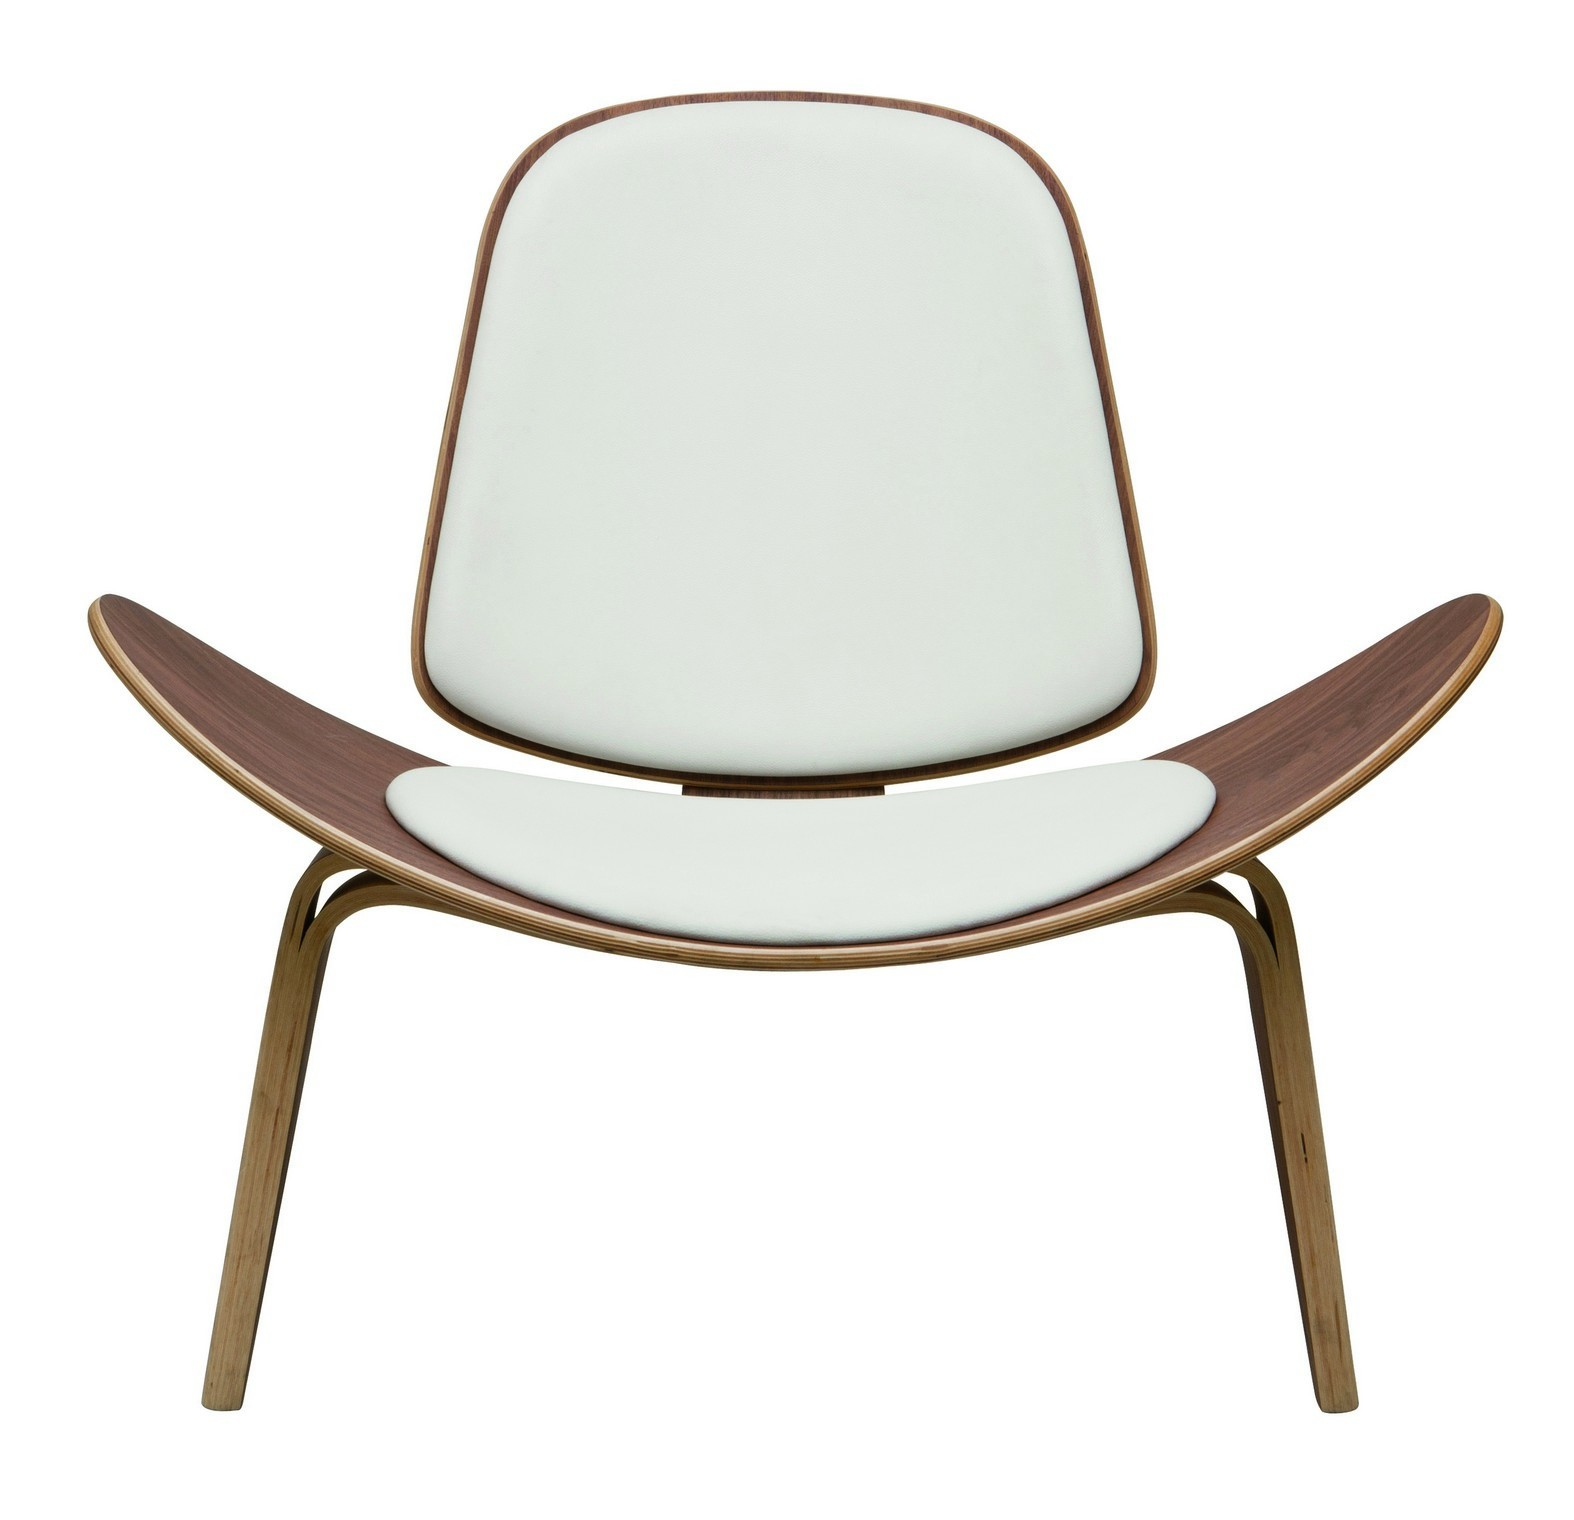 artemis-lounge-chair-walnut-with-white-leather.jpg